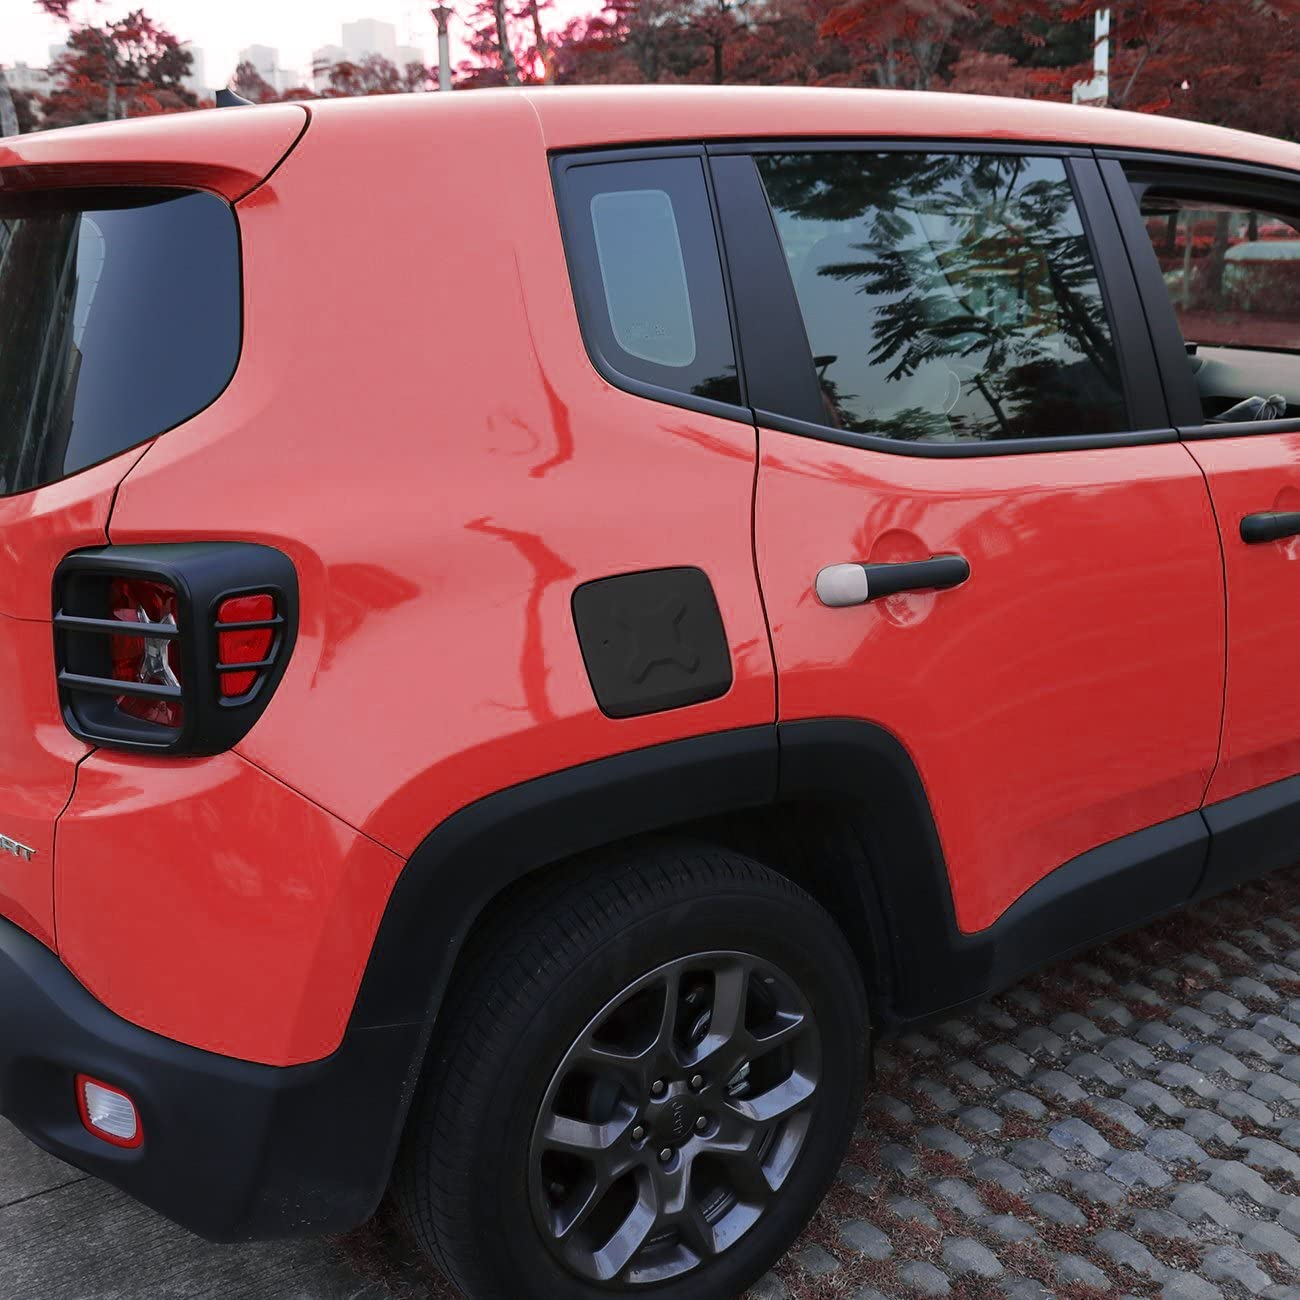 EnRand Door Handle Cover,Gas Tank Cover,Tail Light Cover Guard,Front Light Bezel Headlight Cover Trim and Front Grill Grille Inserts for Jeep Renegade 18pcs Black